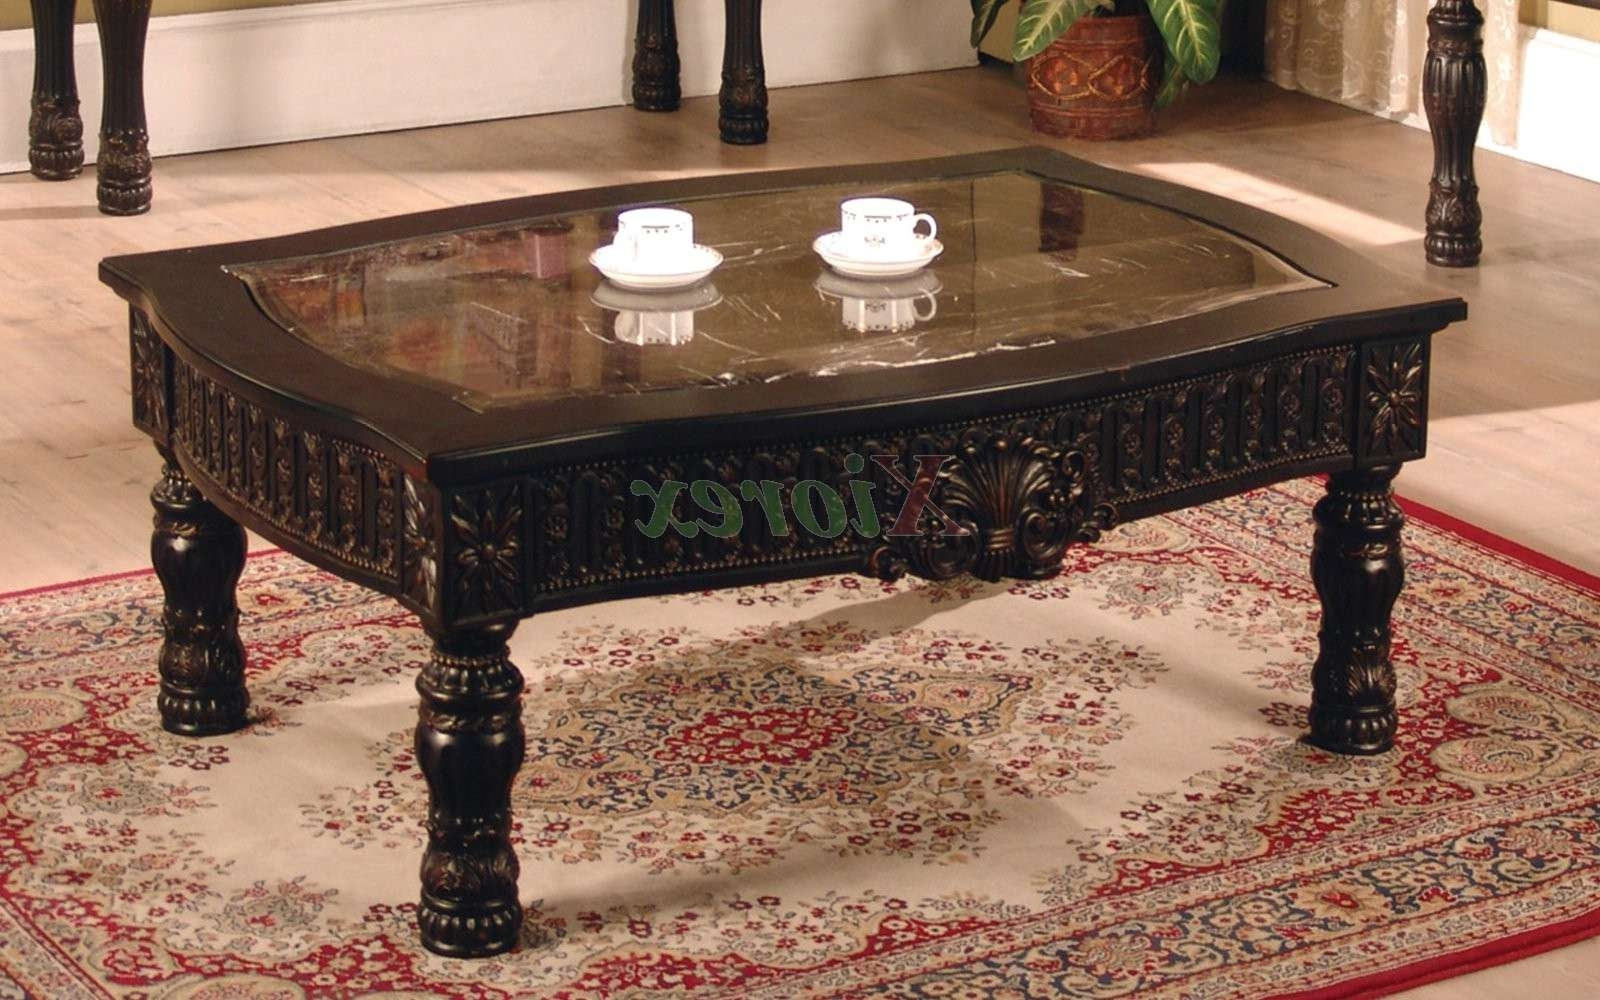 Ajax Rectangle Coffee Table With Faux Marble Top Inlay (Gallery 6 of 20)